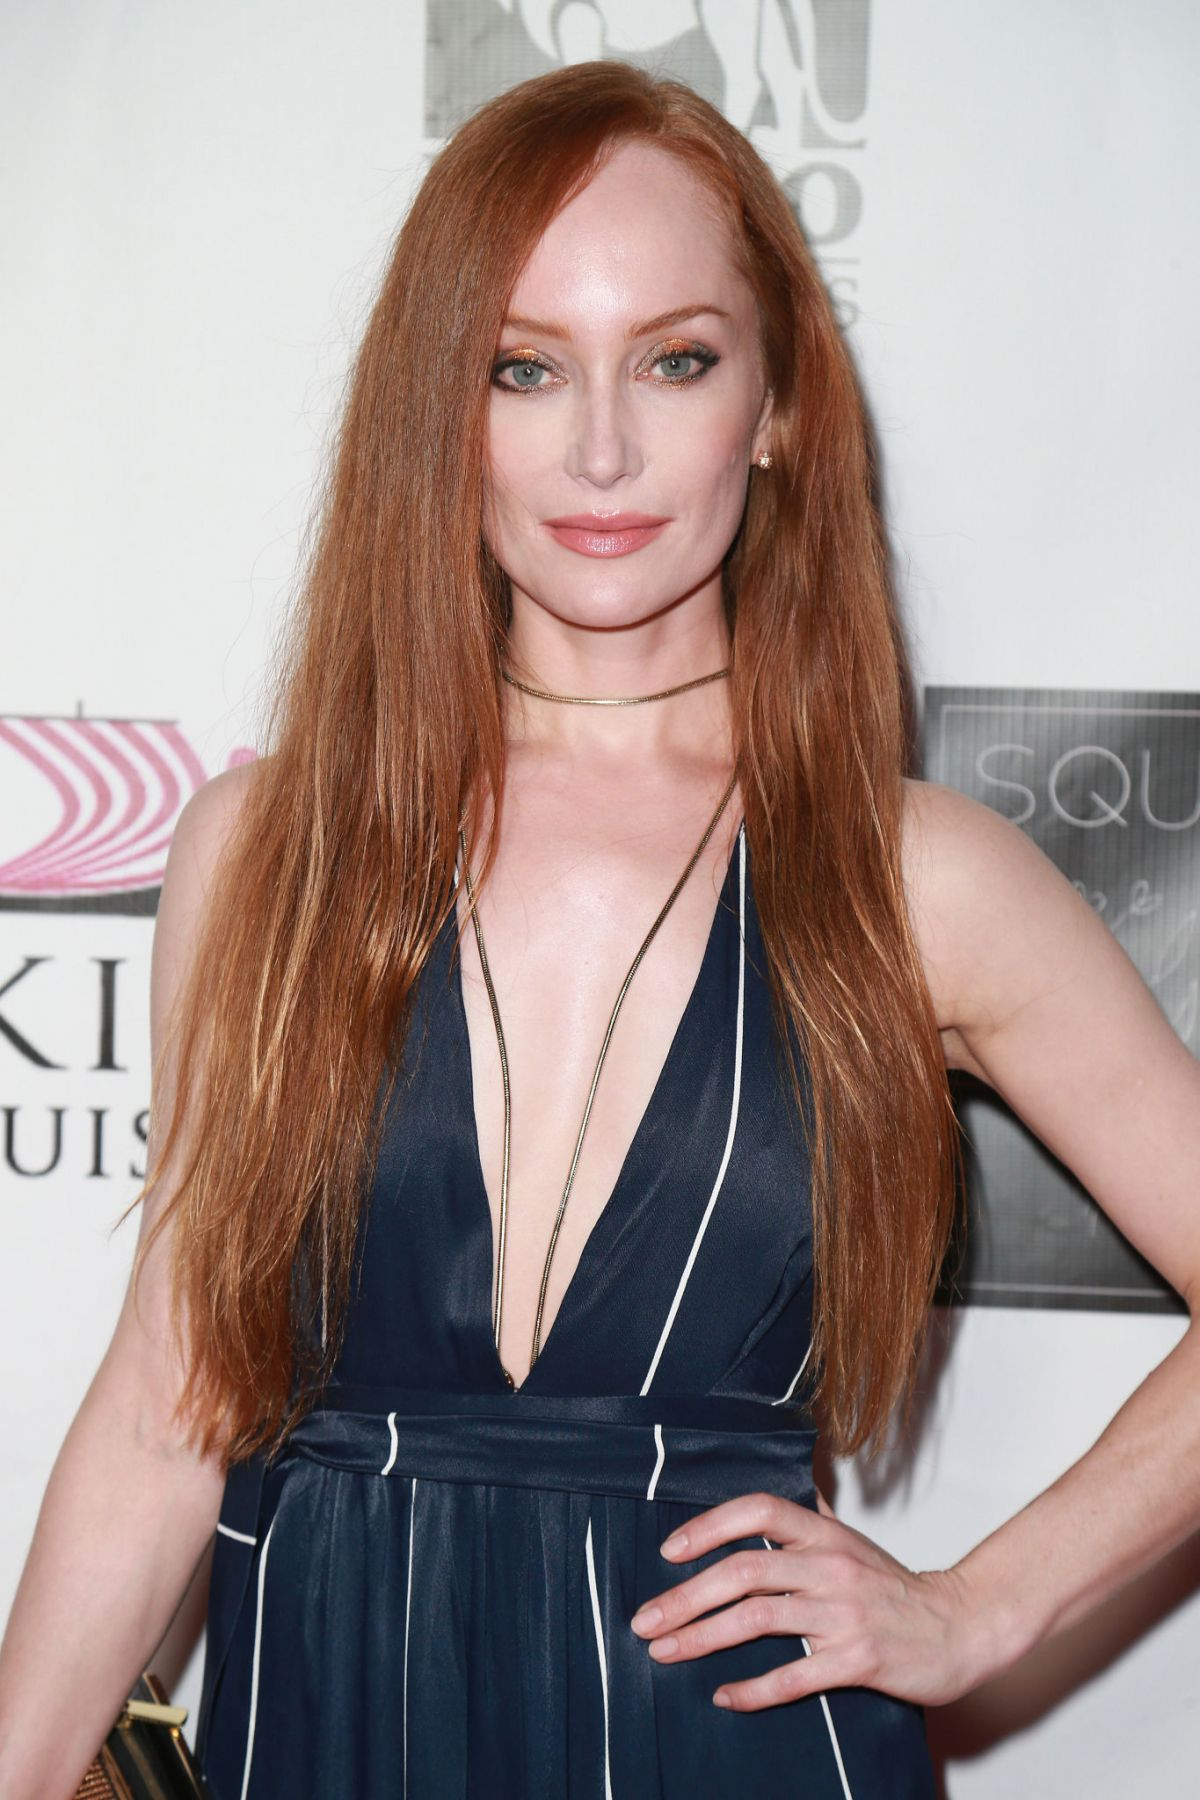 Pictures Lotte Verbeek nudes (45 photos), Ass, Bikini, Twitter, cleavage 2015